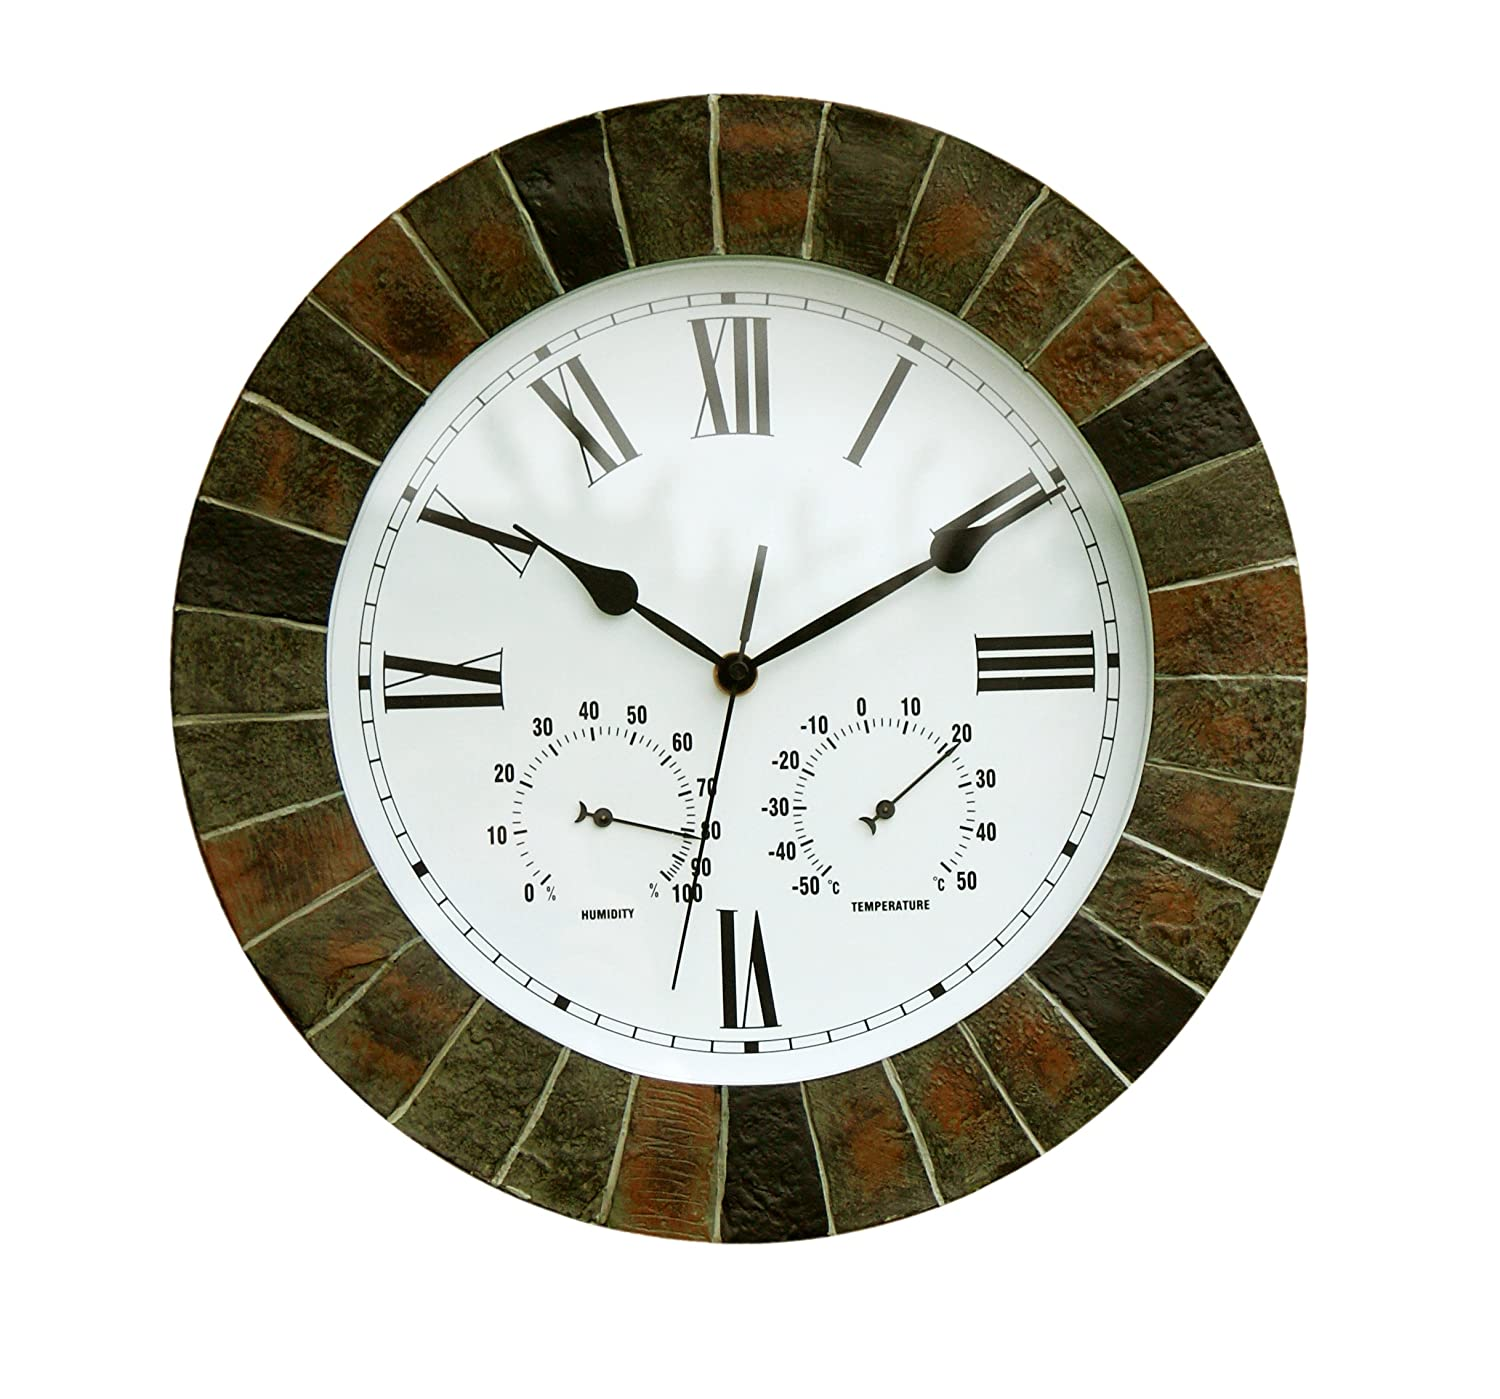 About Time Slate Effect Garden Outdoor Wall Clock with Thermometer and Hygrometer - 35.5cm (14